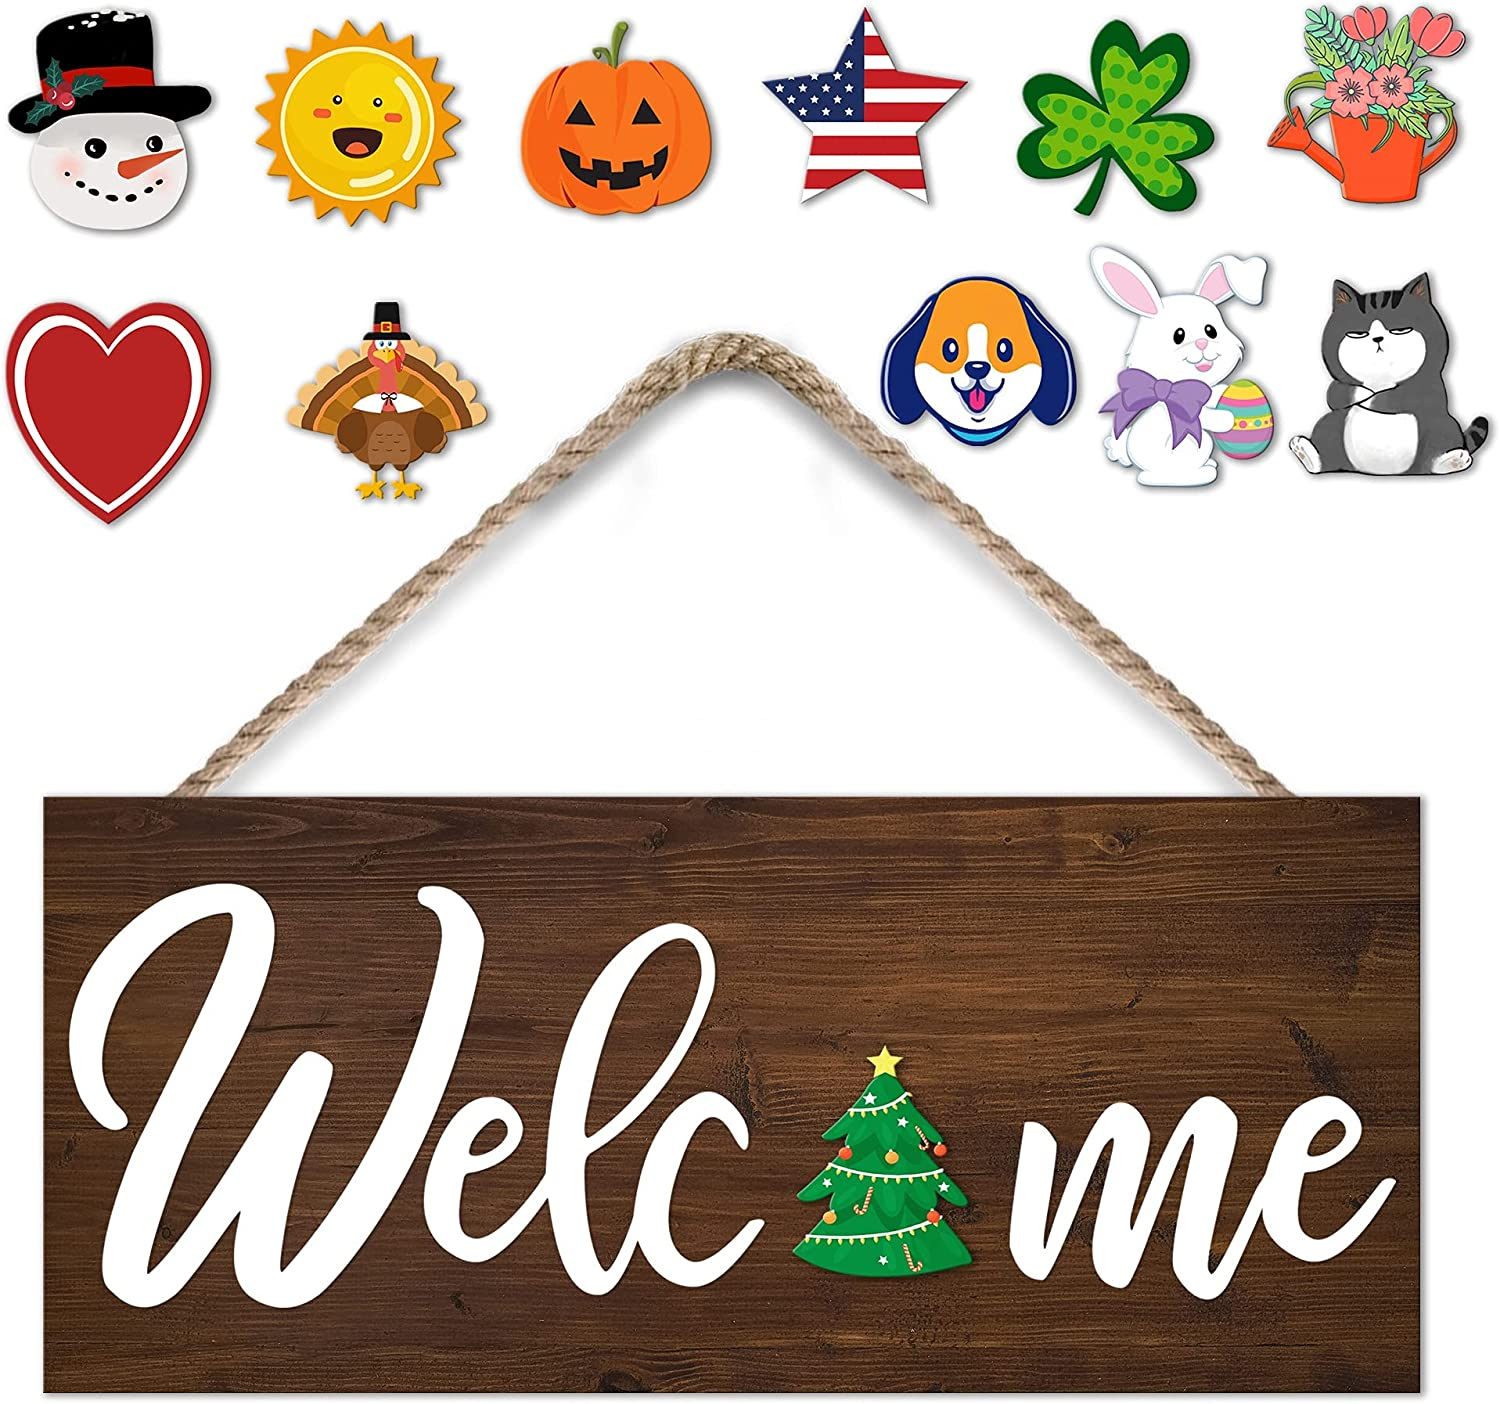 Interchangeable Seasonal Welcome Sign Front Door Decor,Rustic Wood Welcome Sign for Front Porch Decor or Wall Hanging Indoor or Outdoor,Farmhouse Home Holiday Decoration